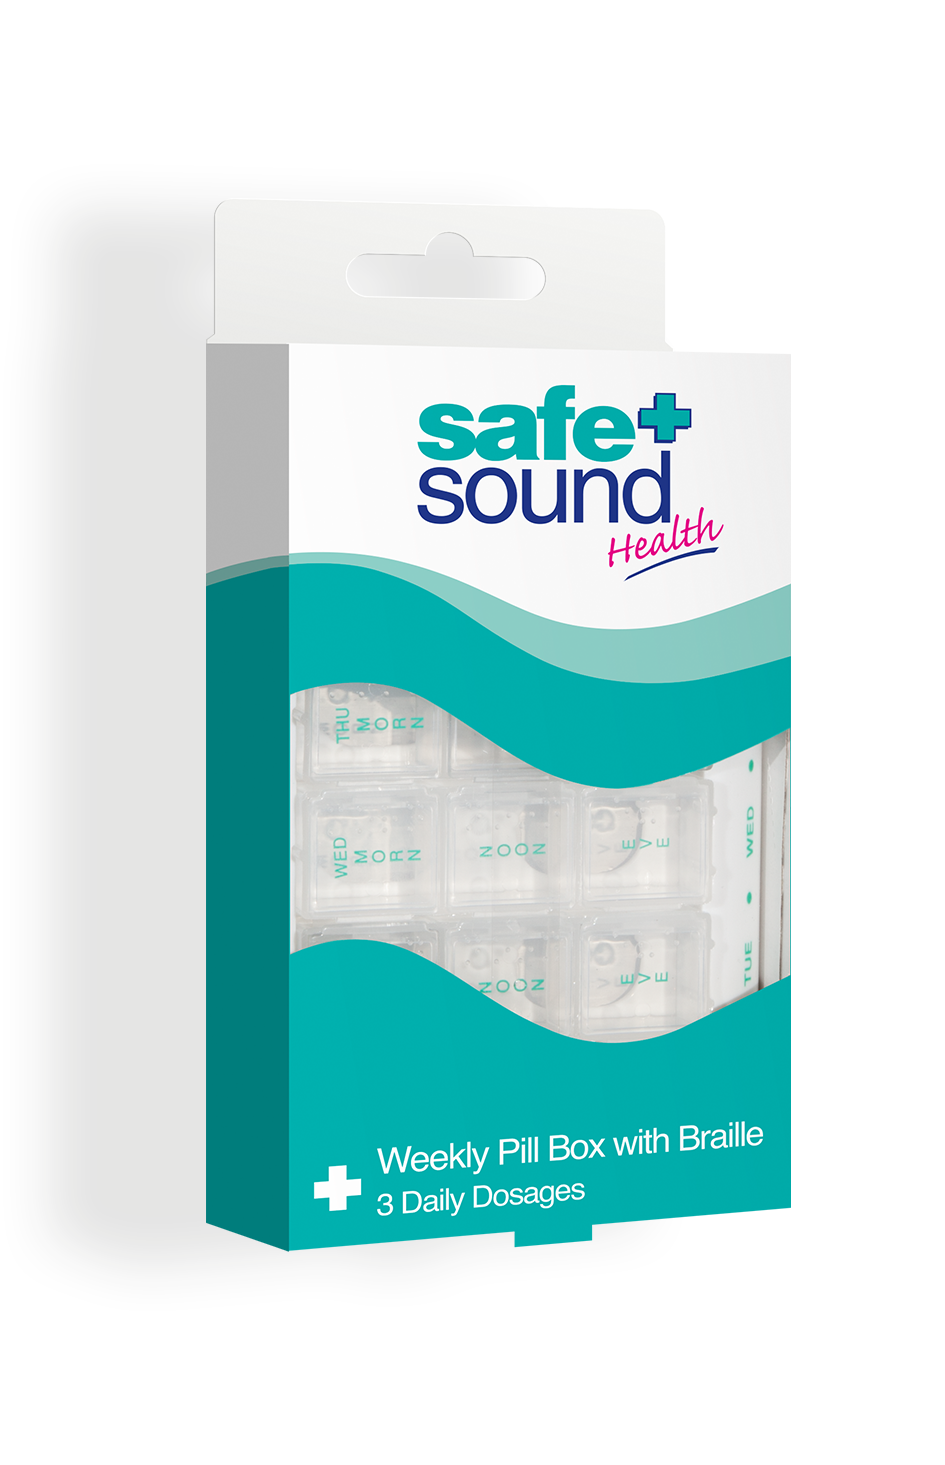 Safe and Sound Health Three-Times Daily 7 day Pillbox with Braille